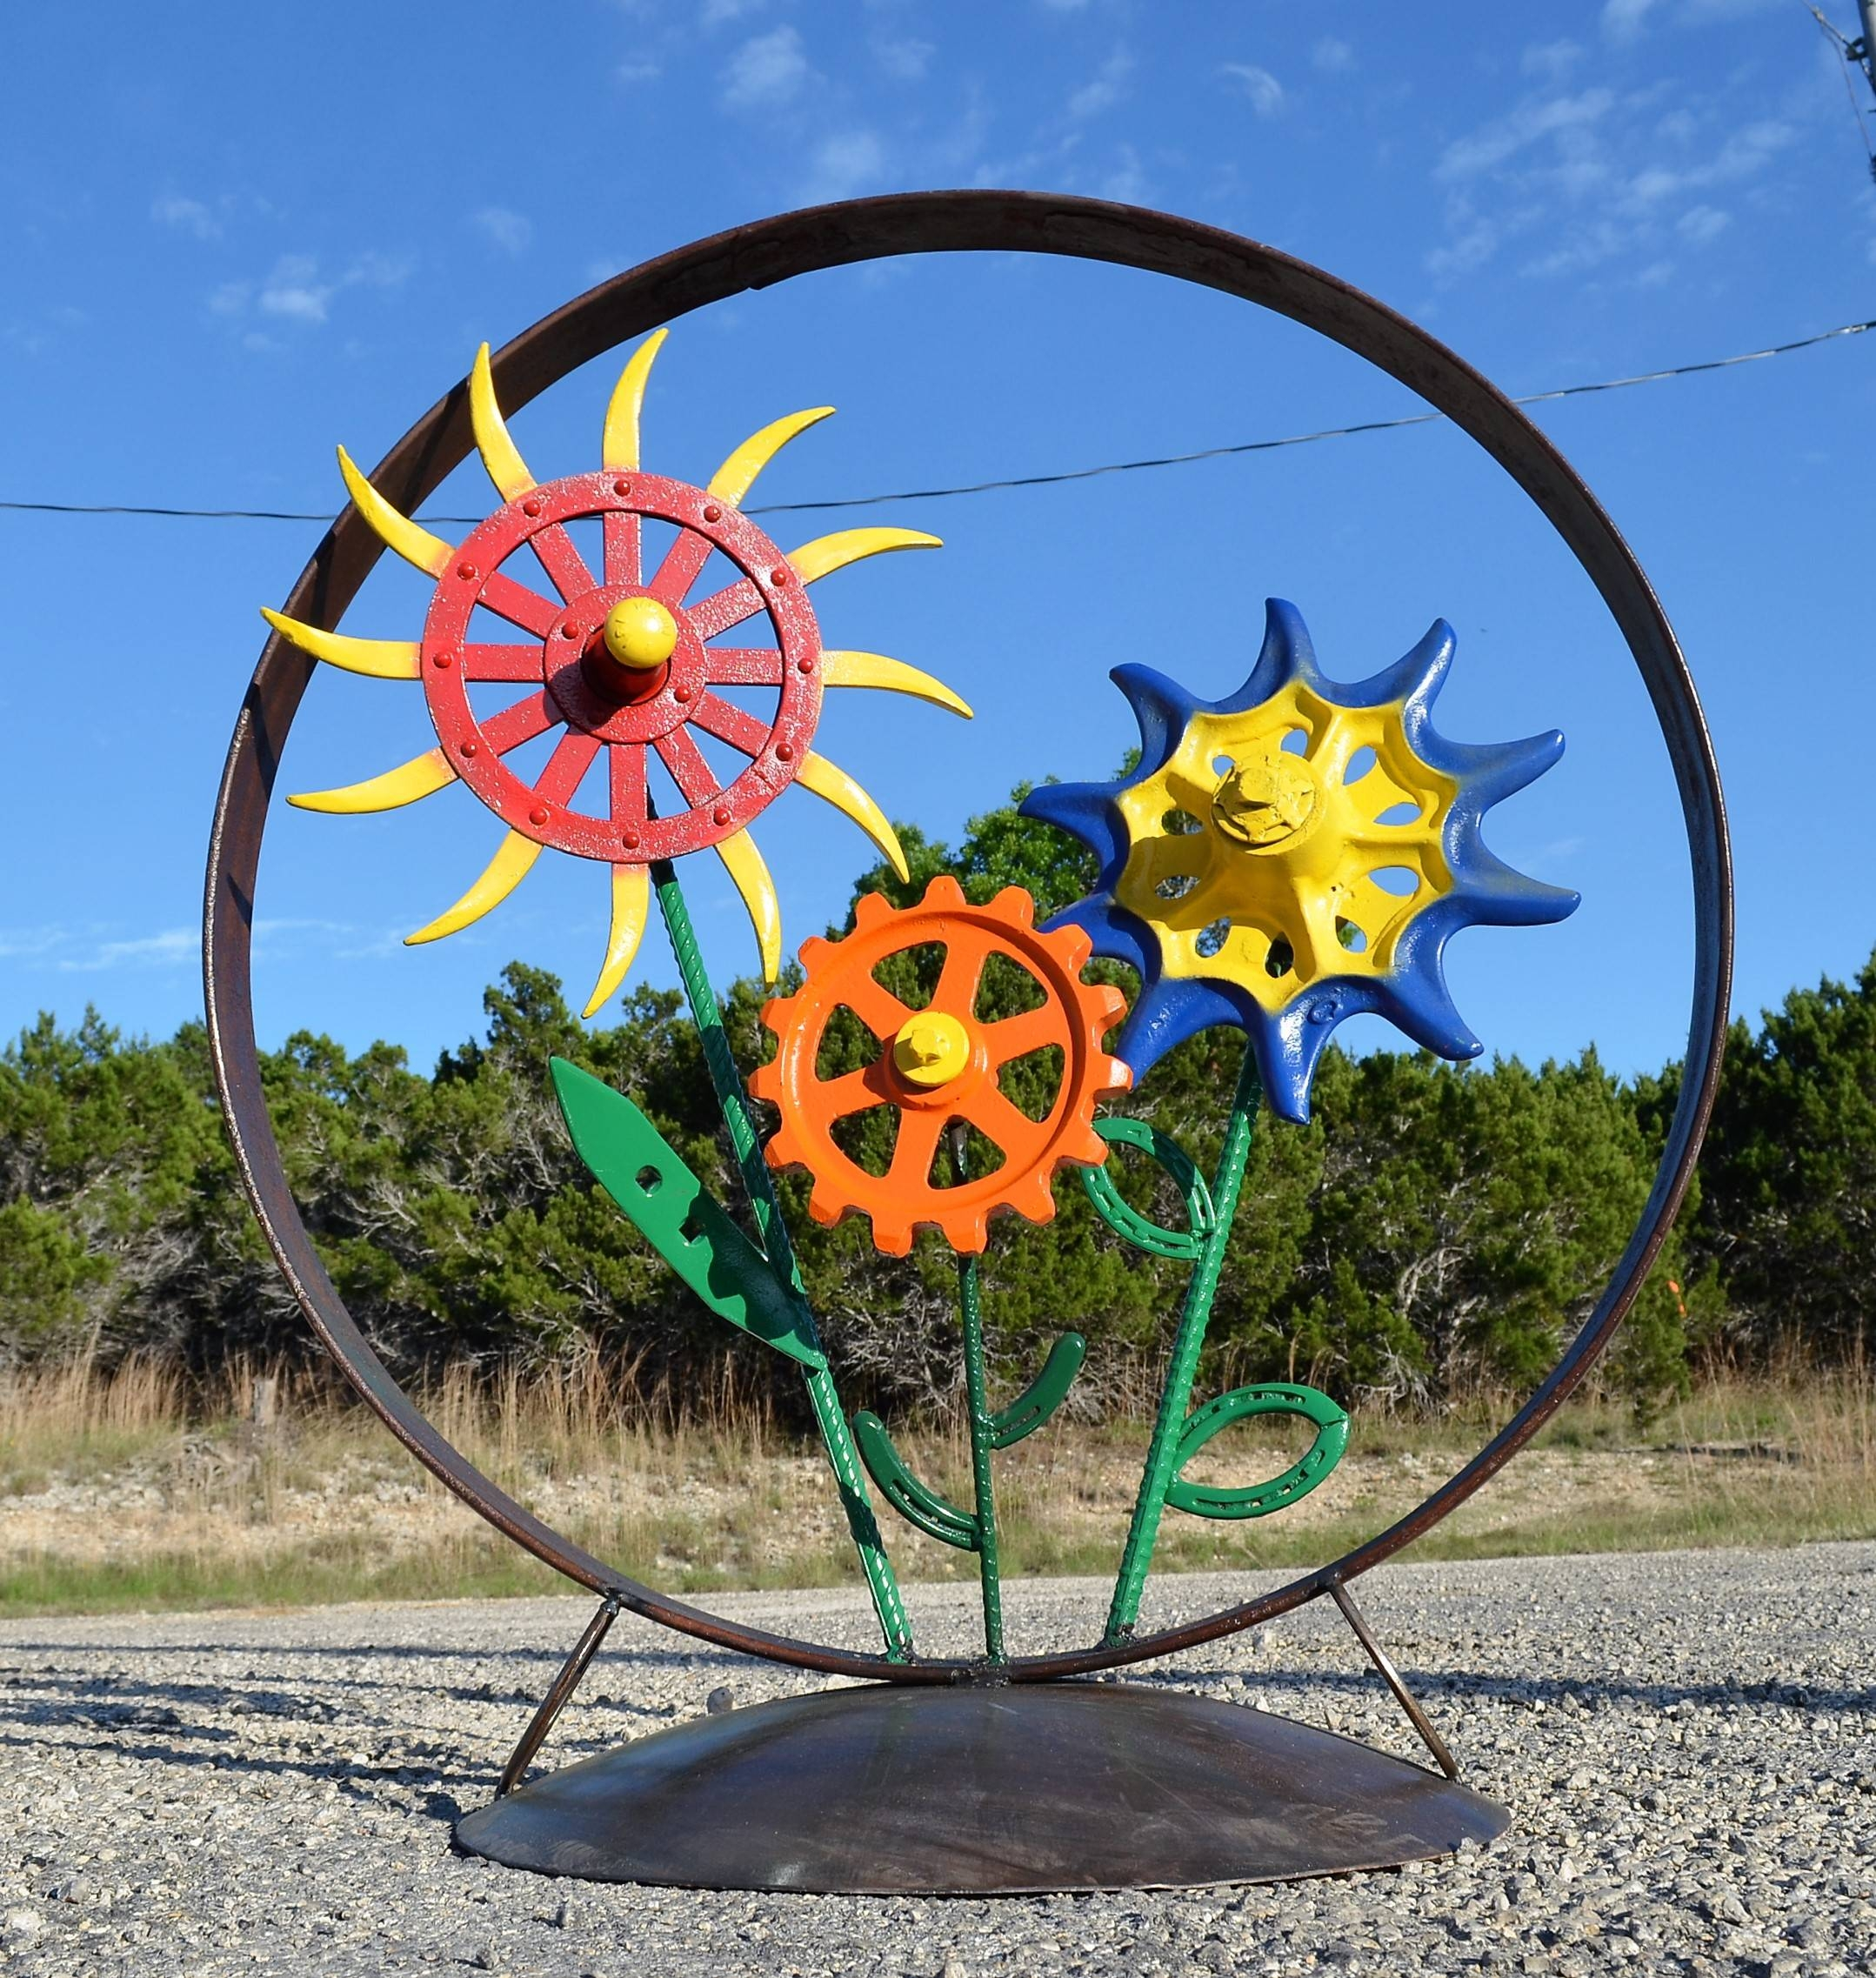 Yard Art – Sycamore Creek Creations Regarding Newest Metal Sunflower Yard Art (View 26 of 26)